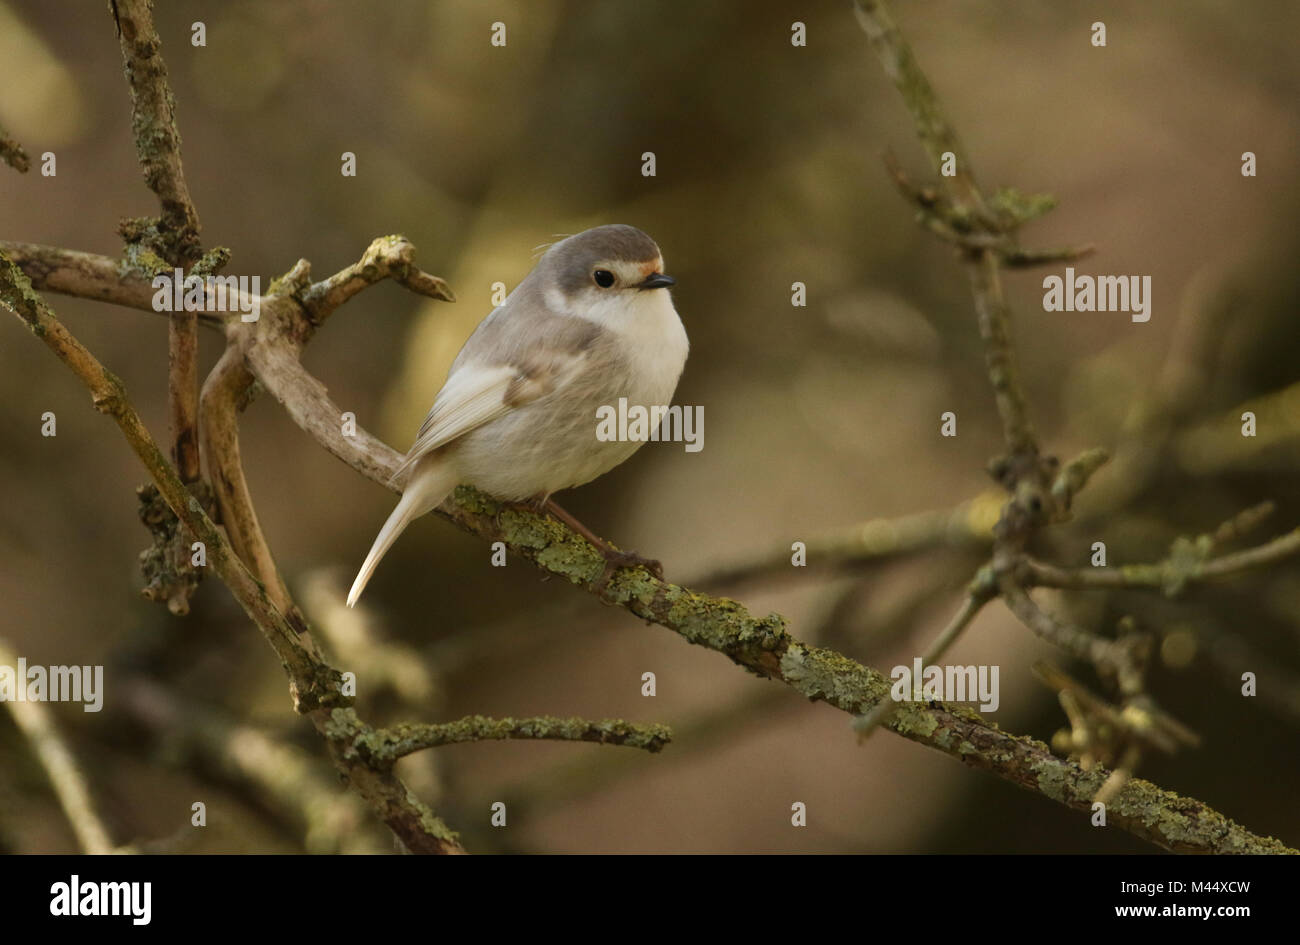 A rare Leucistic Robin (Erithacus rubecula) perched  on a branch in a tree. - Stock Image